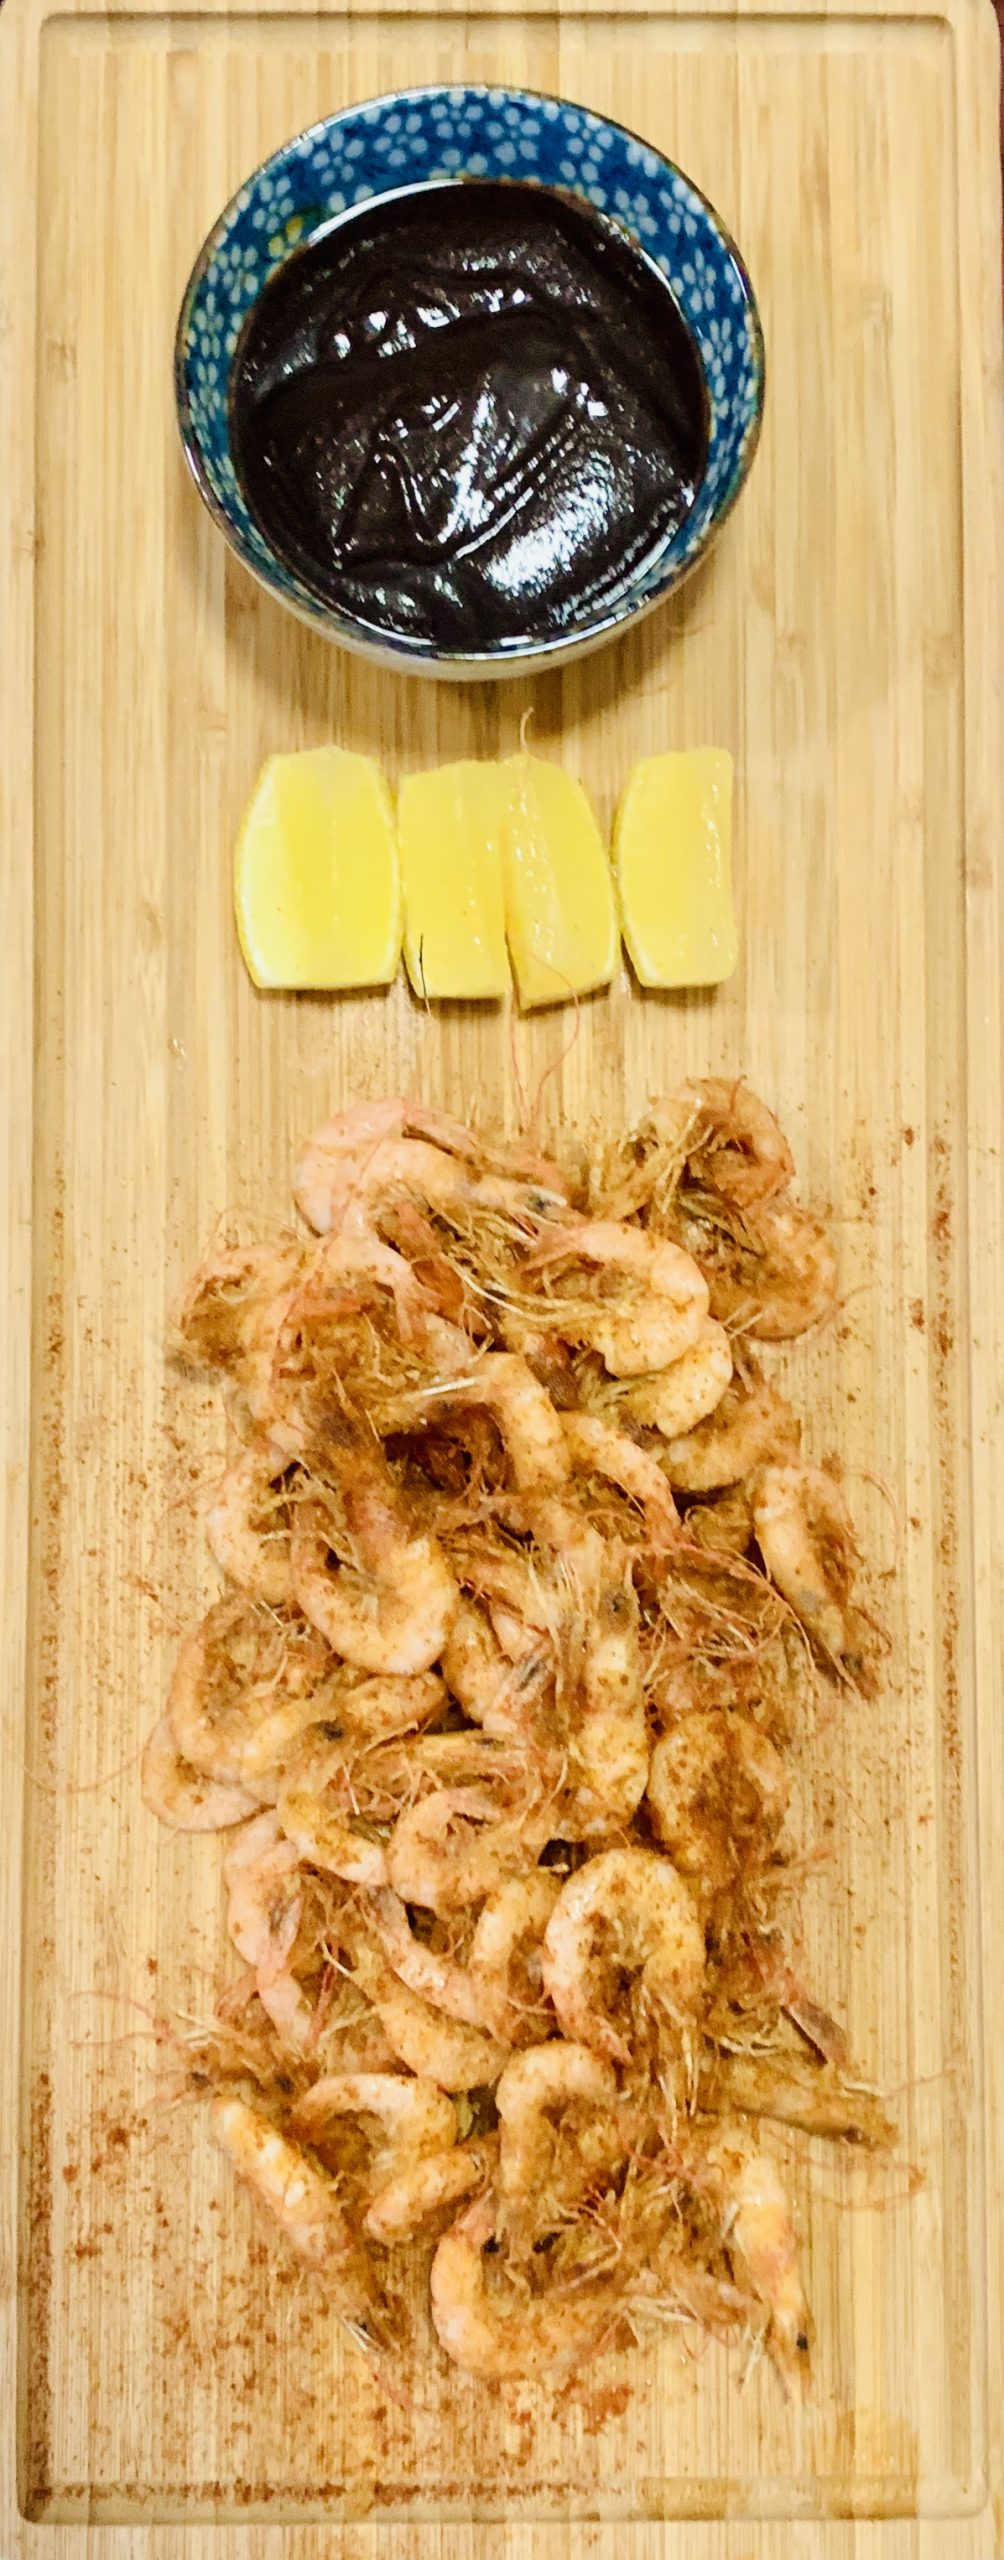 Shallow-fried School Prawns 'w' Lemon & HoiSin